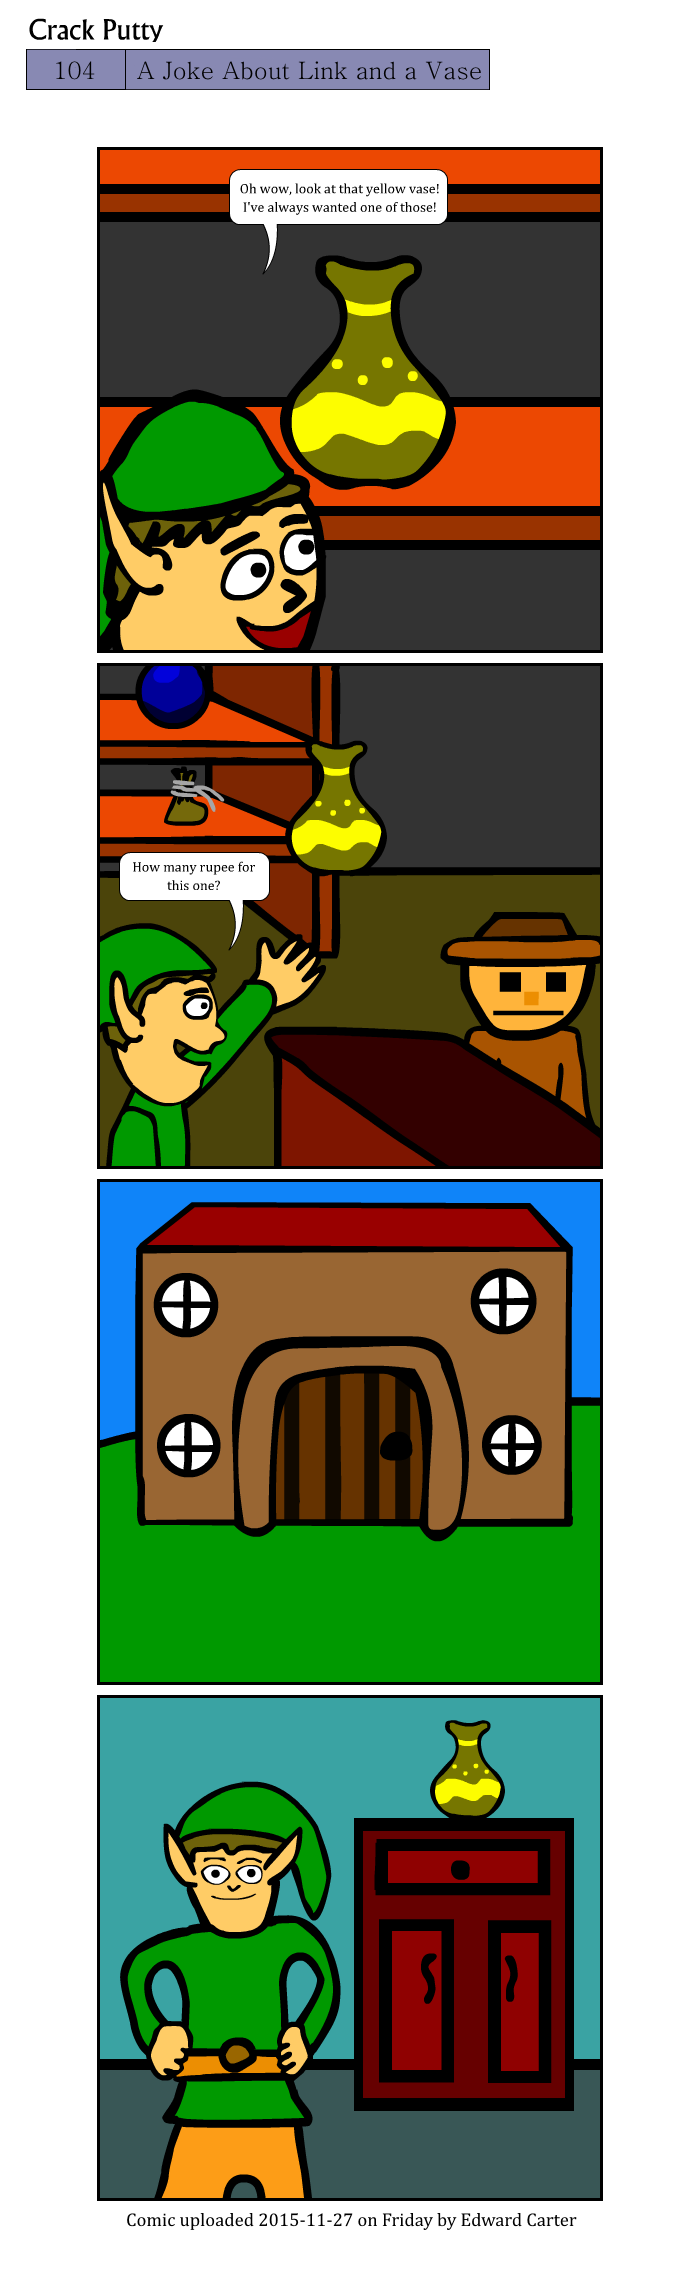 A Joke About Link and a Vase